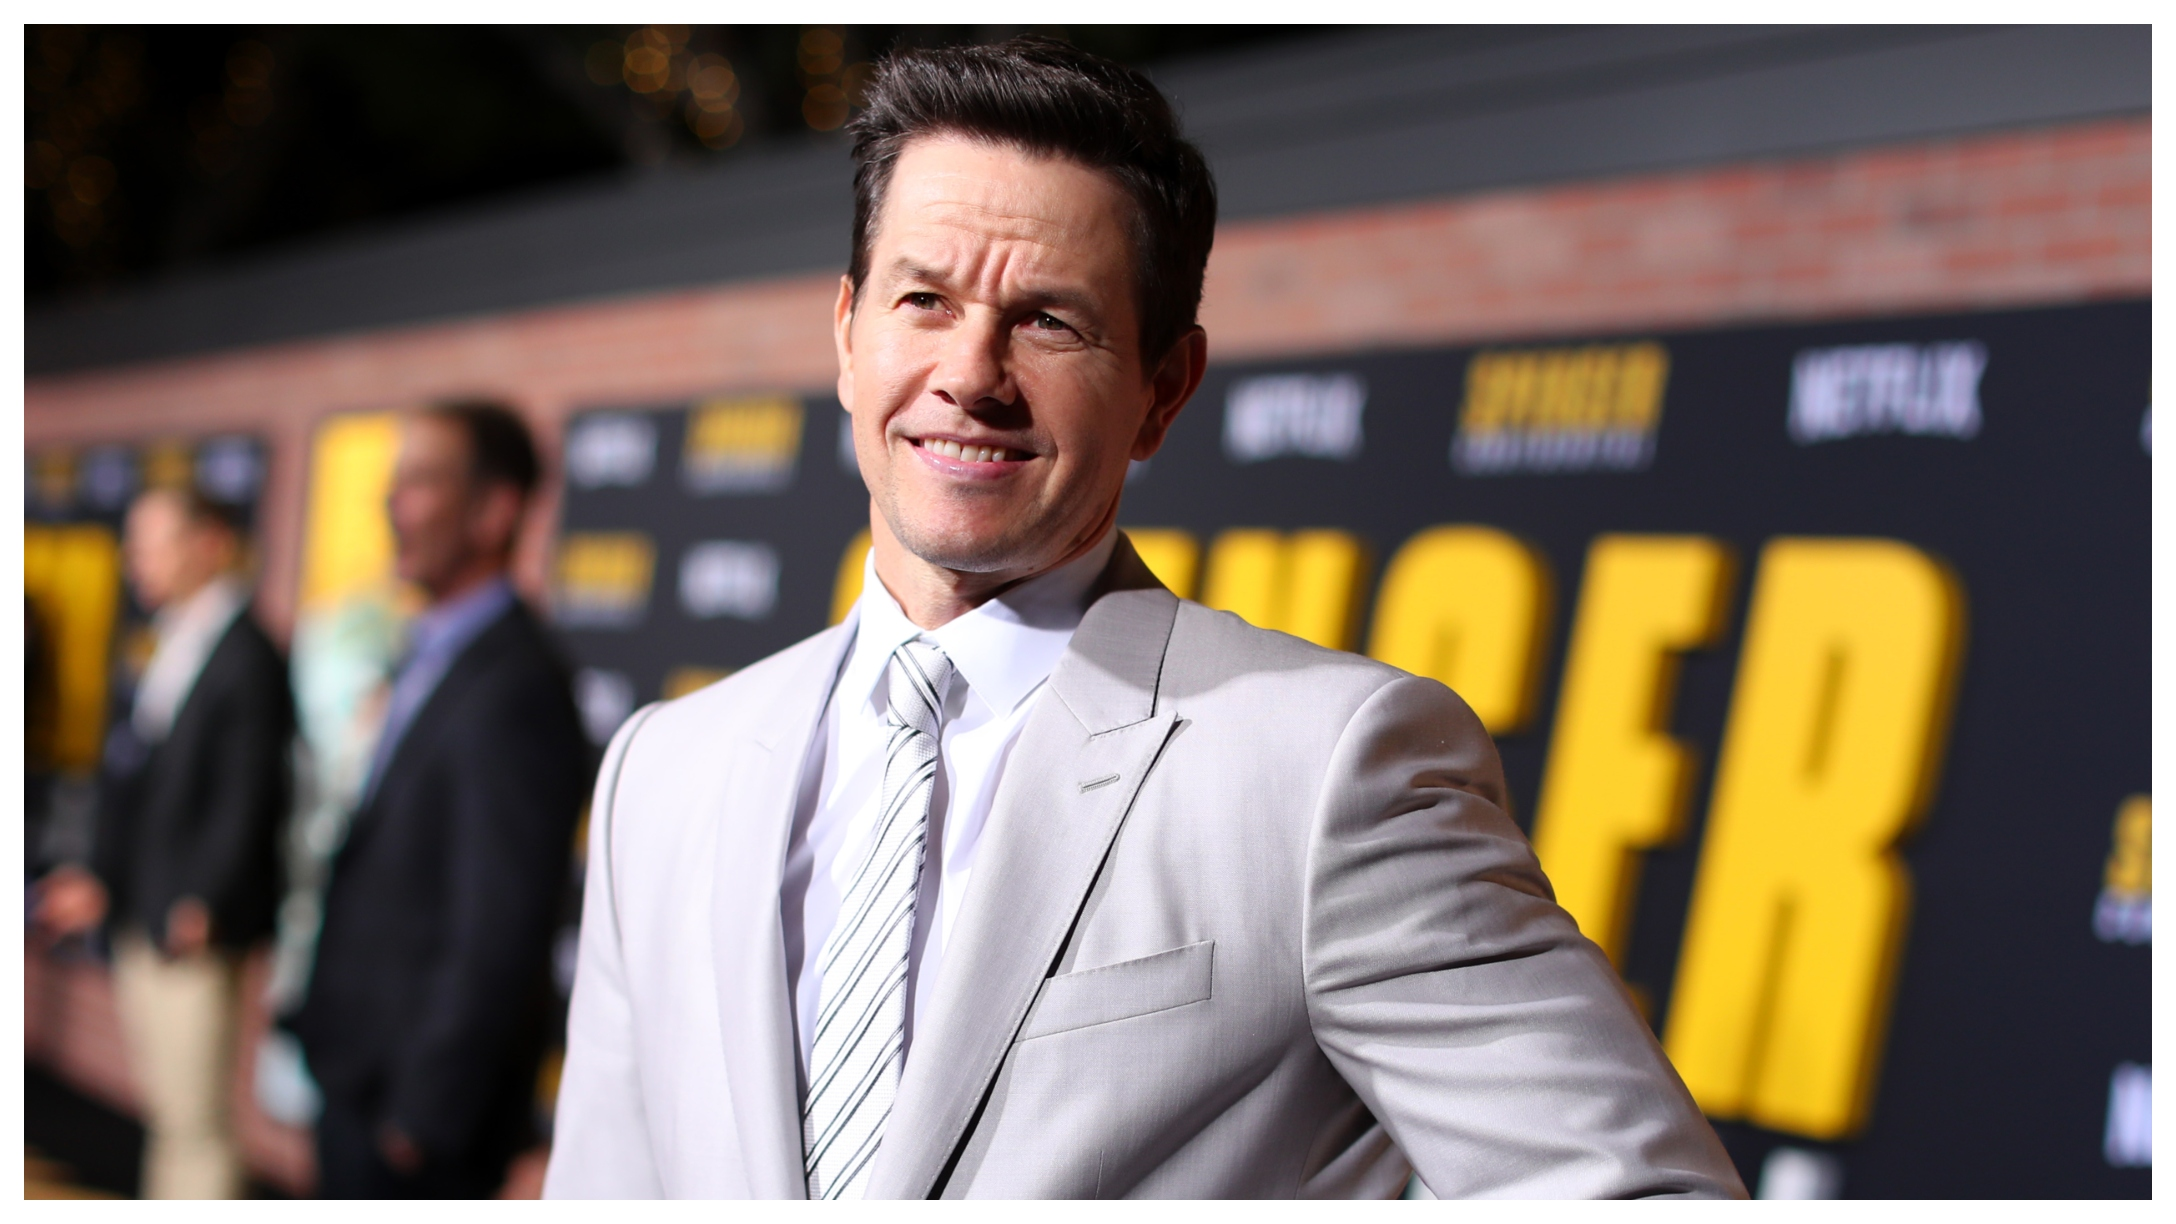 Mark Wahlberg Reveals Massive 30-Pound Weight Gain For His Latest Role